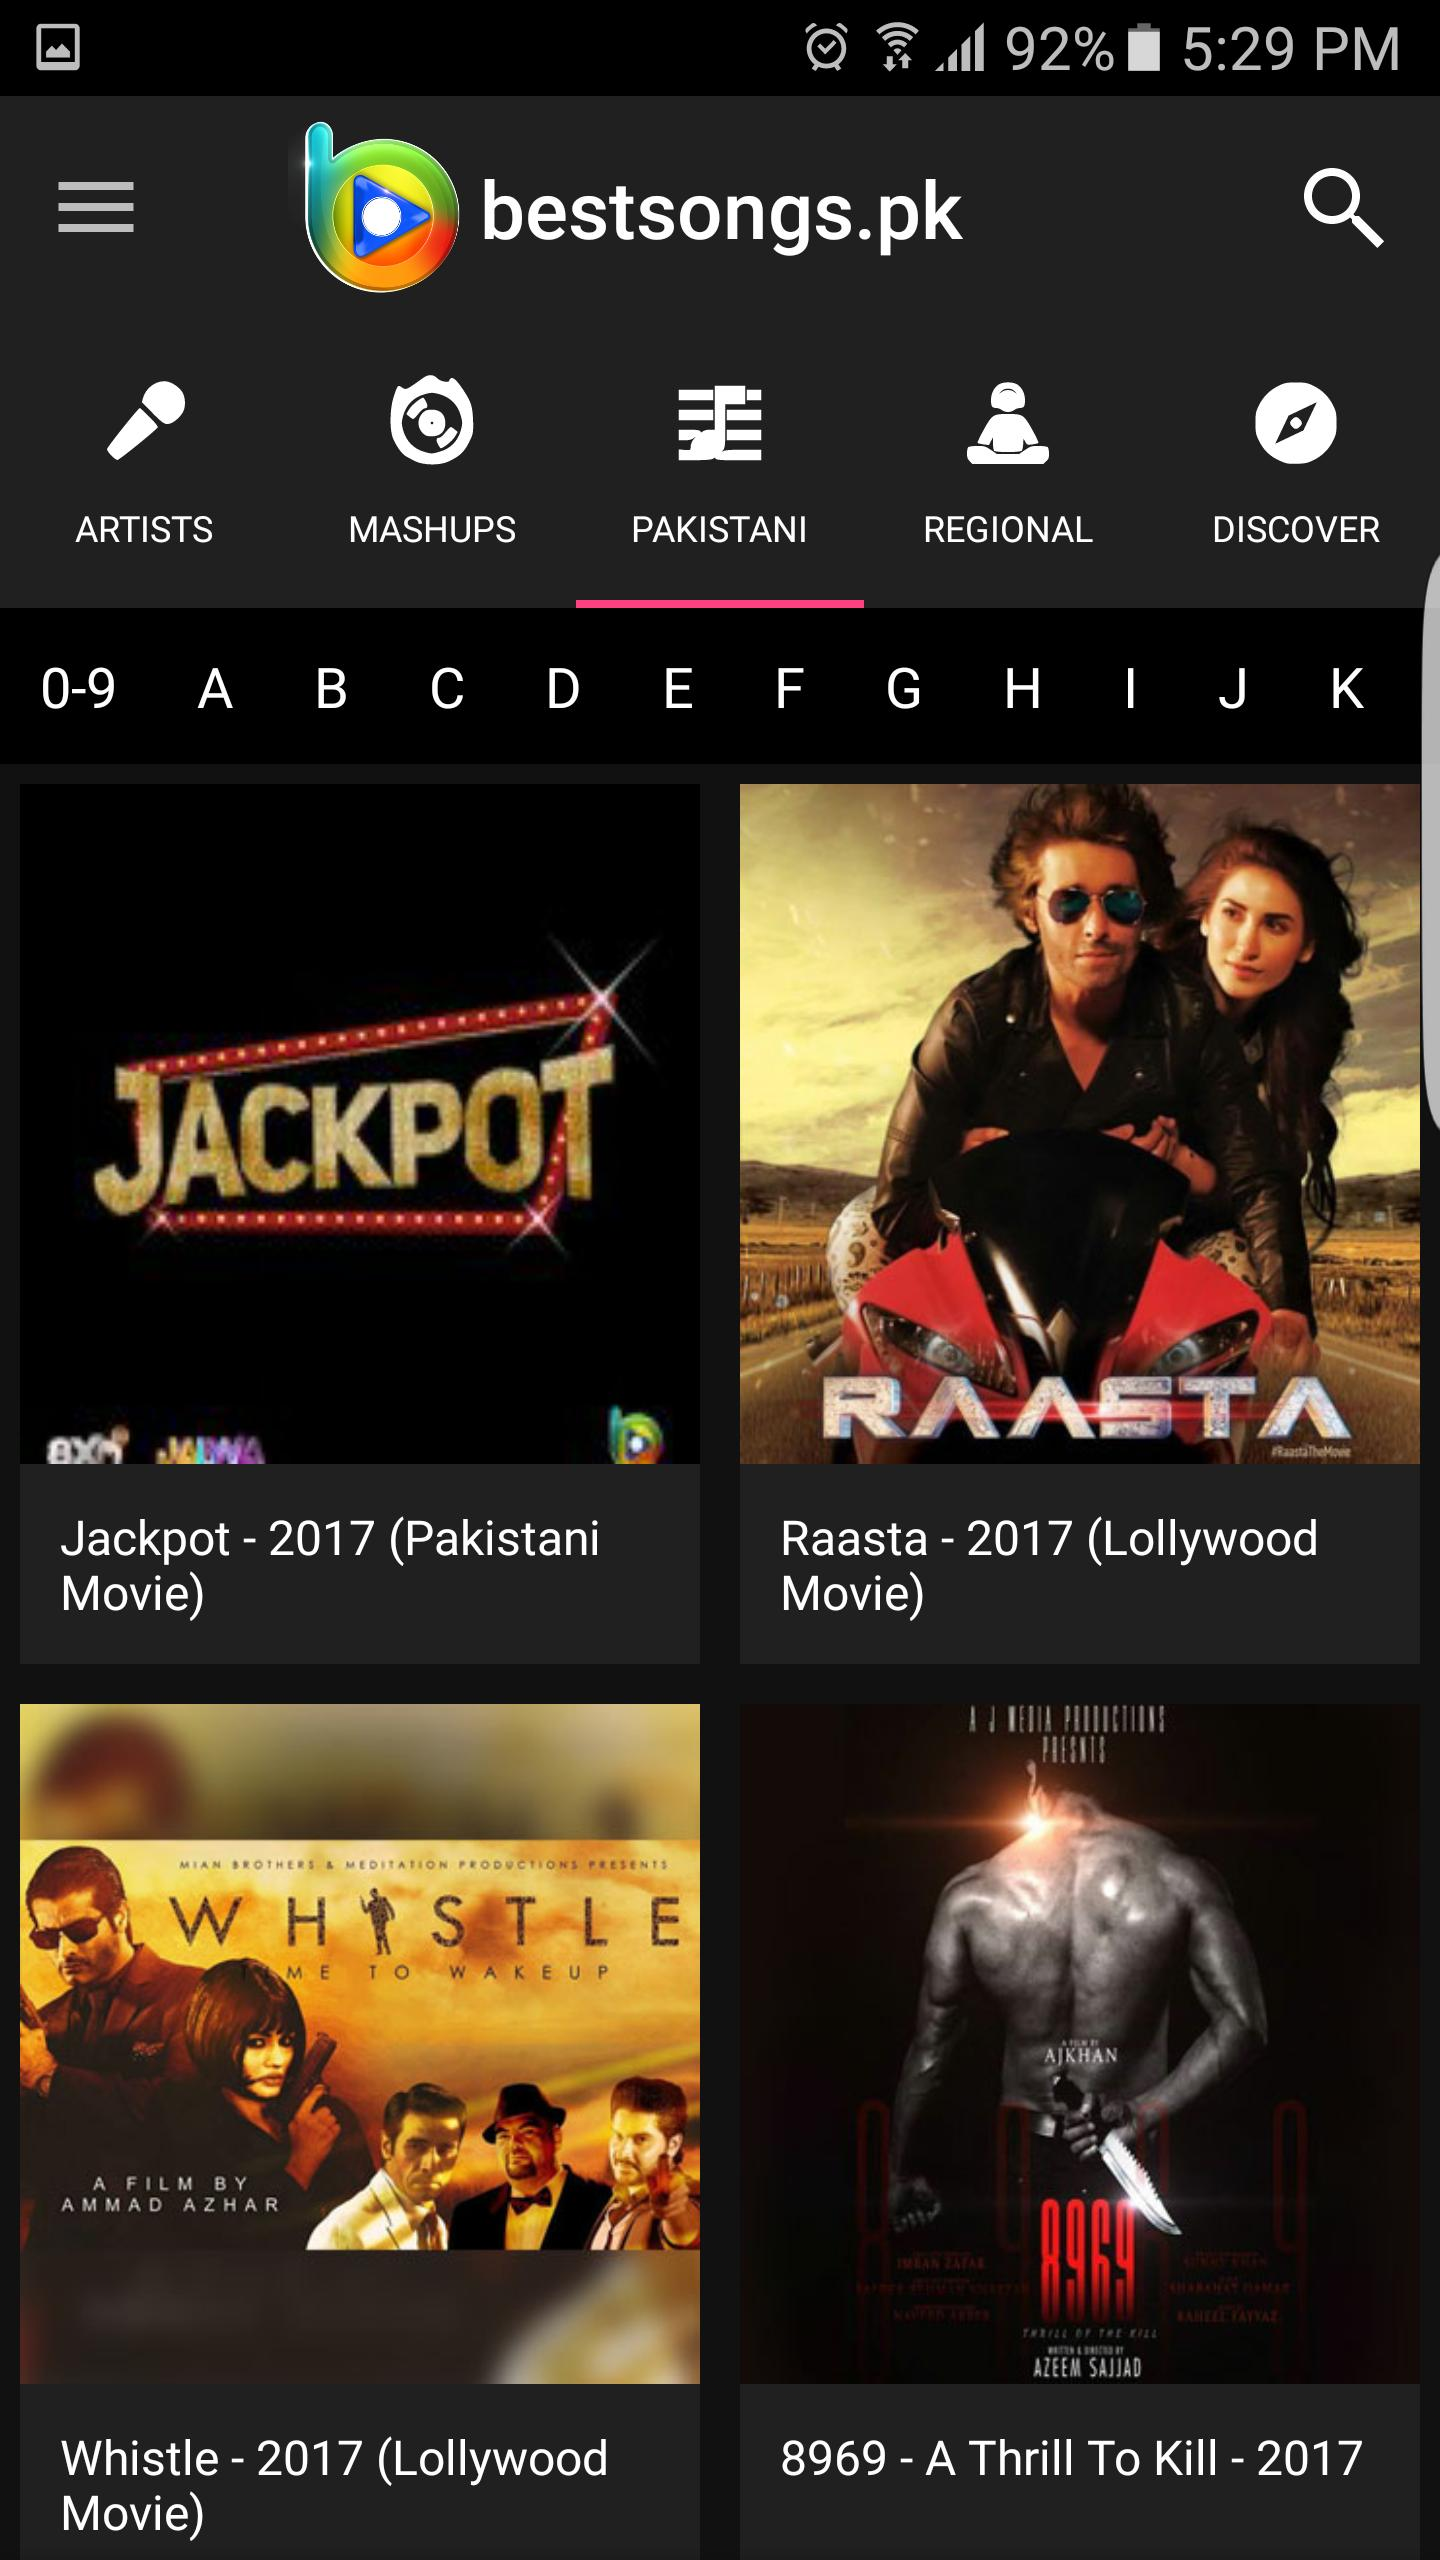 bestsongs pk for Android - APK Download